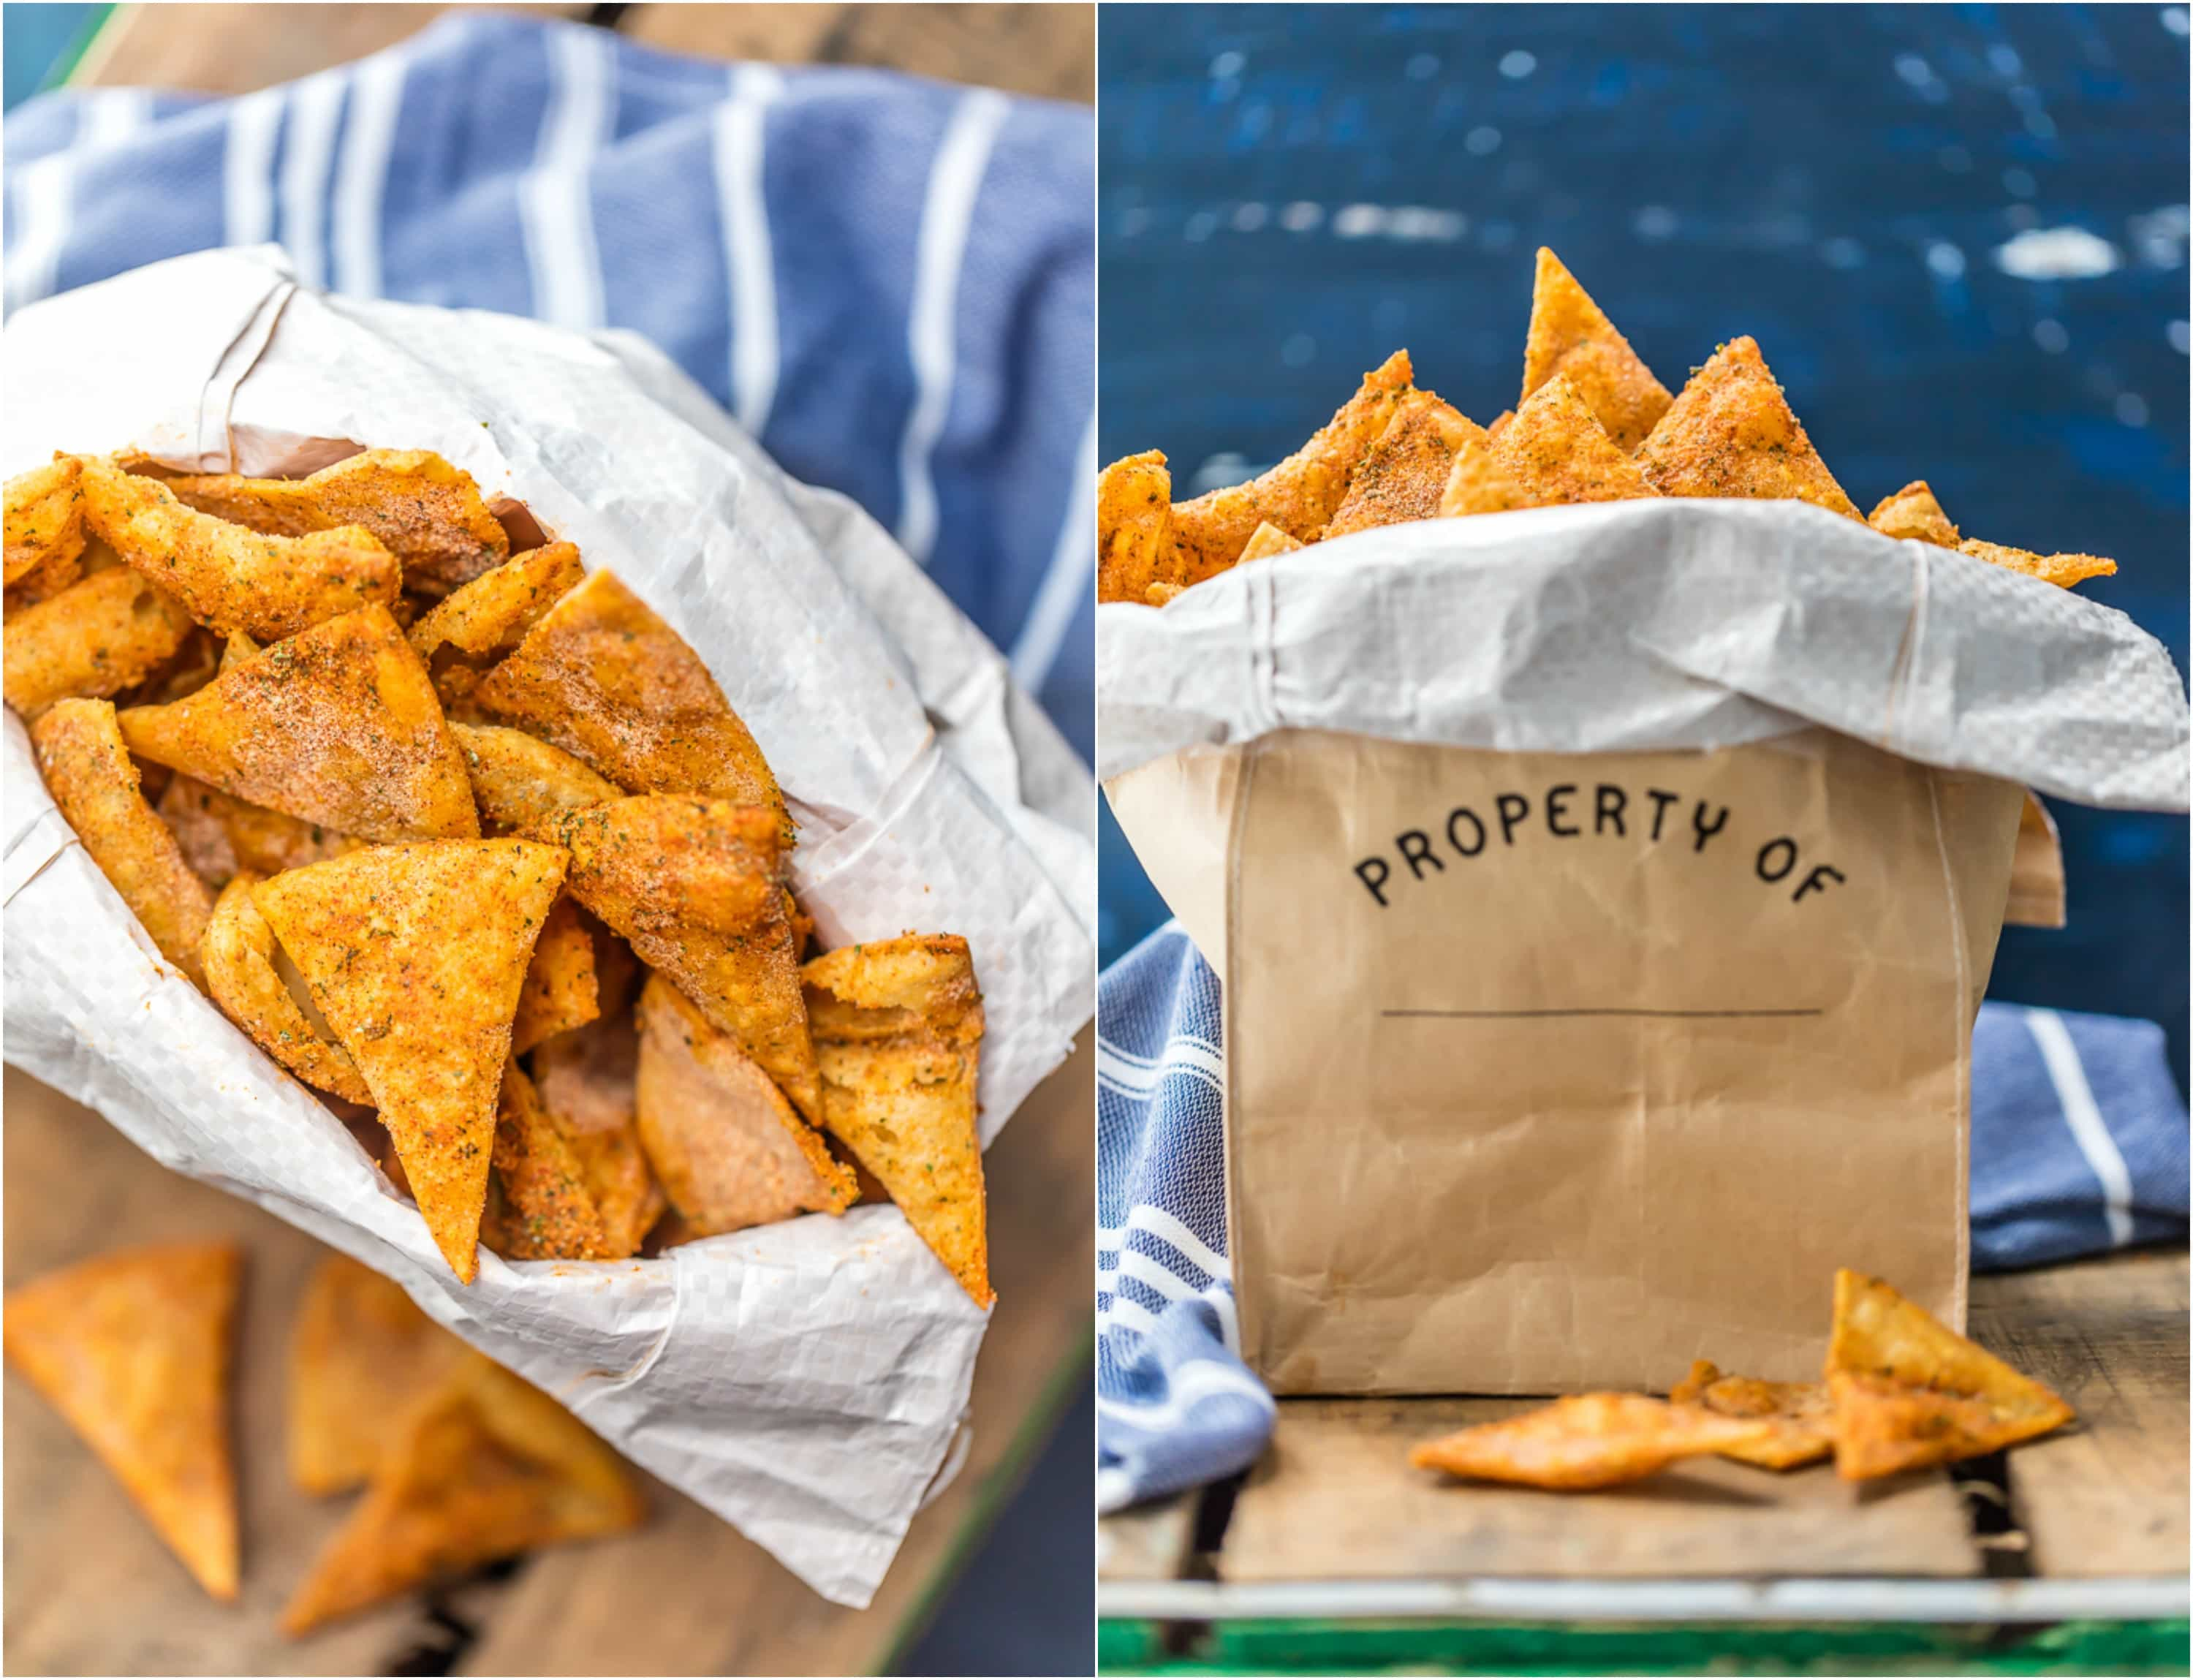 Cool Ranch Doritos are fun, tasty, easy, and cheap to make at home!! This HOMEMADE DORITOS RECIPE will impress your family and is sure to be made again and again. Once you learn How to Make Doritos you'll never go back to buying bag after bag. You'll be in love with this Cool Ranch Doritos Recipe and want to learn how to make all the flavors.